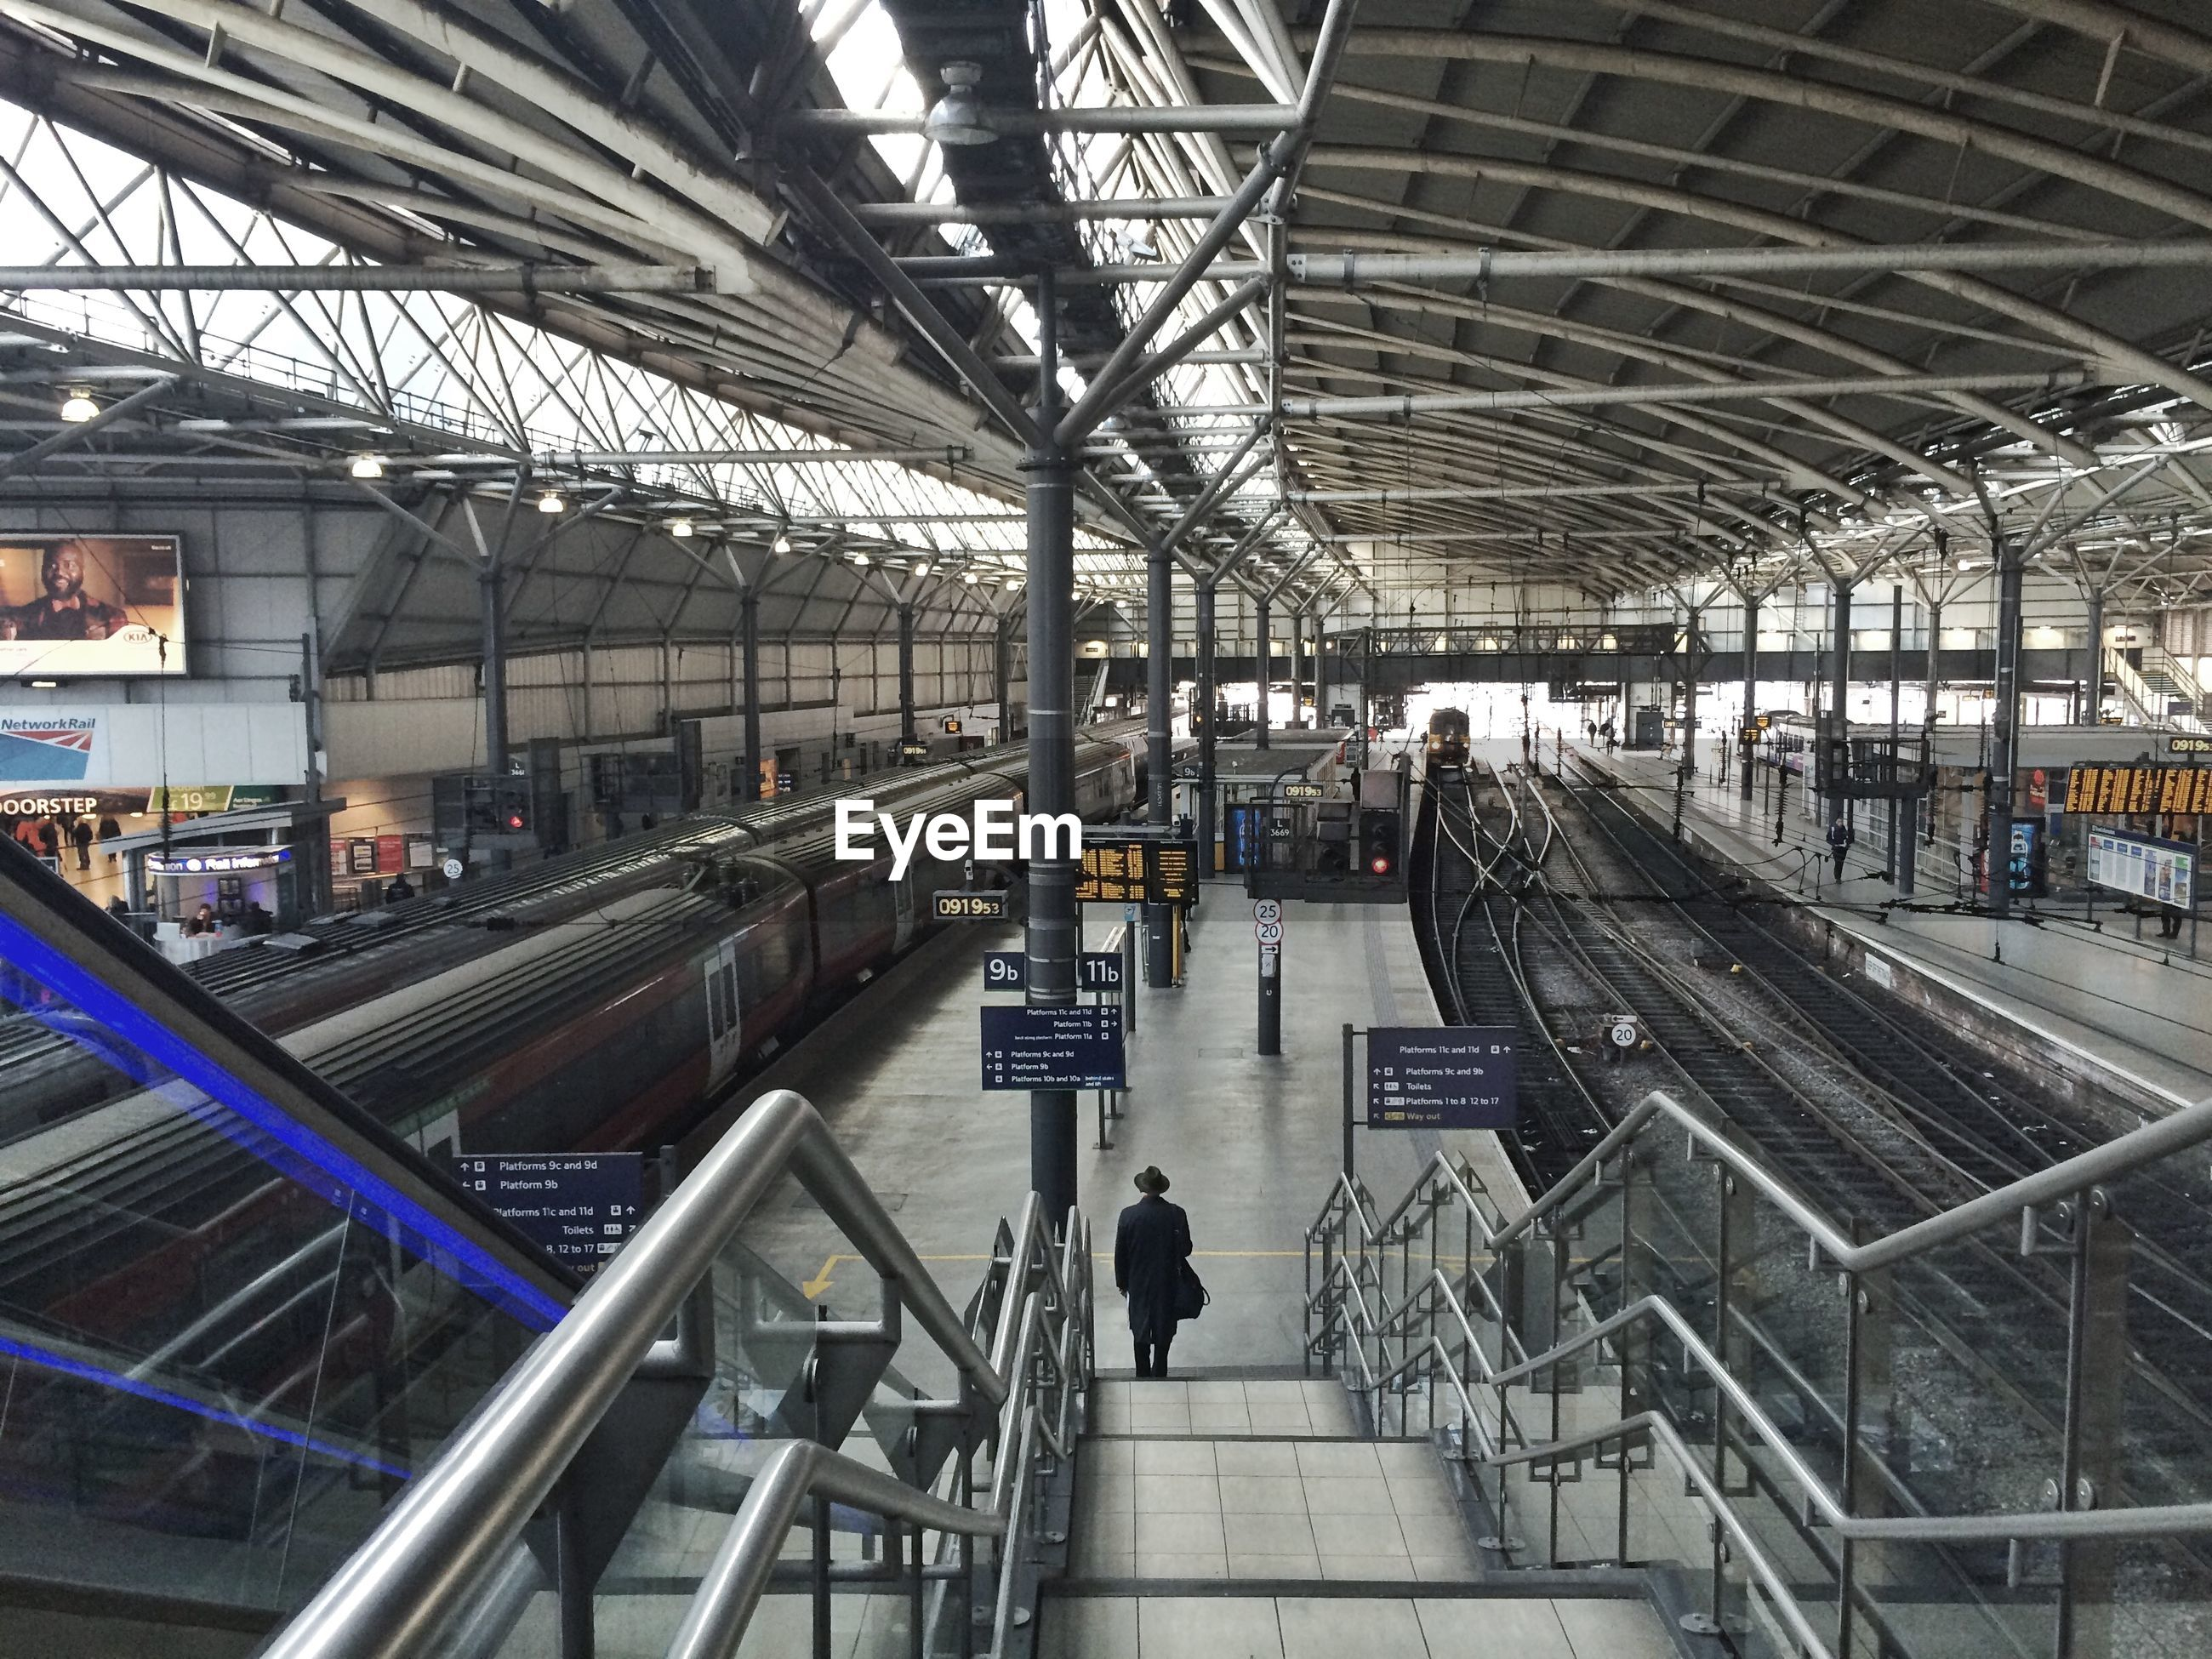 indoors, railroad track, architecture, built structure, rail transportation, railroad station, railroad station platform, ceiling, public transportation, transportation, metal, incidental people, transportation building - type of building, men, travel, day, high angle view, train - vehicle, railing